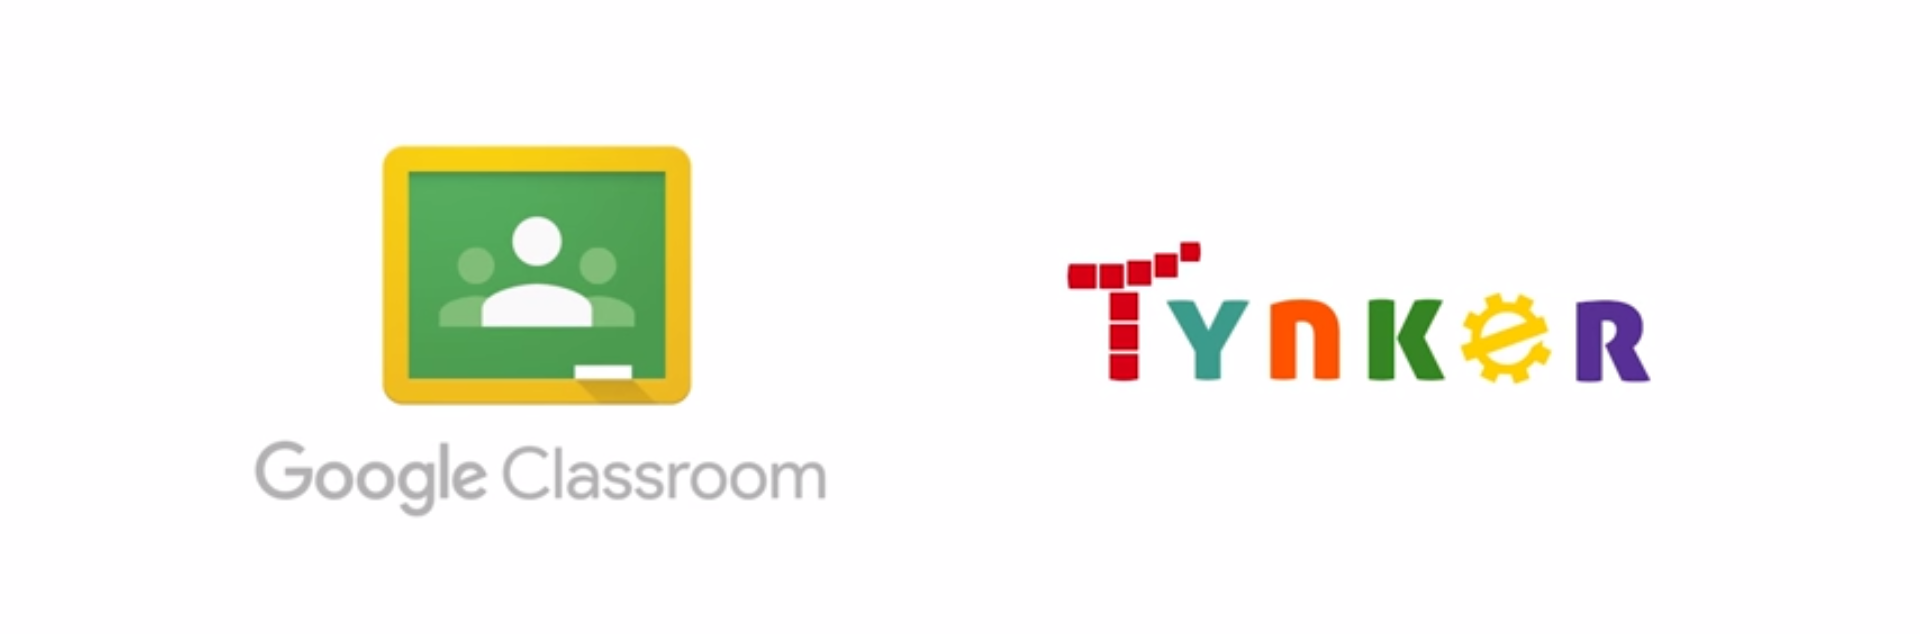 How to Use Google Classroom with Tynker